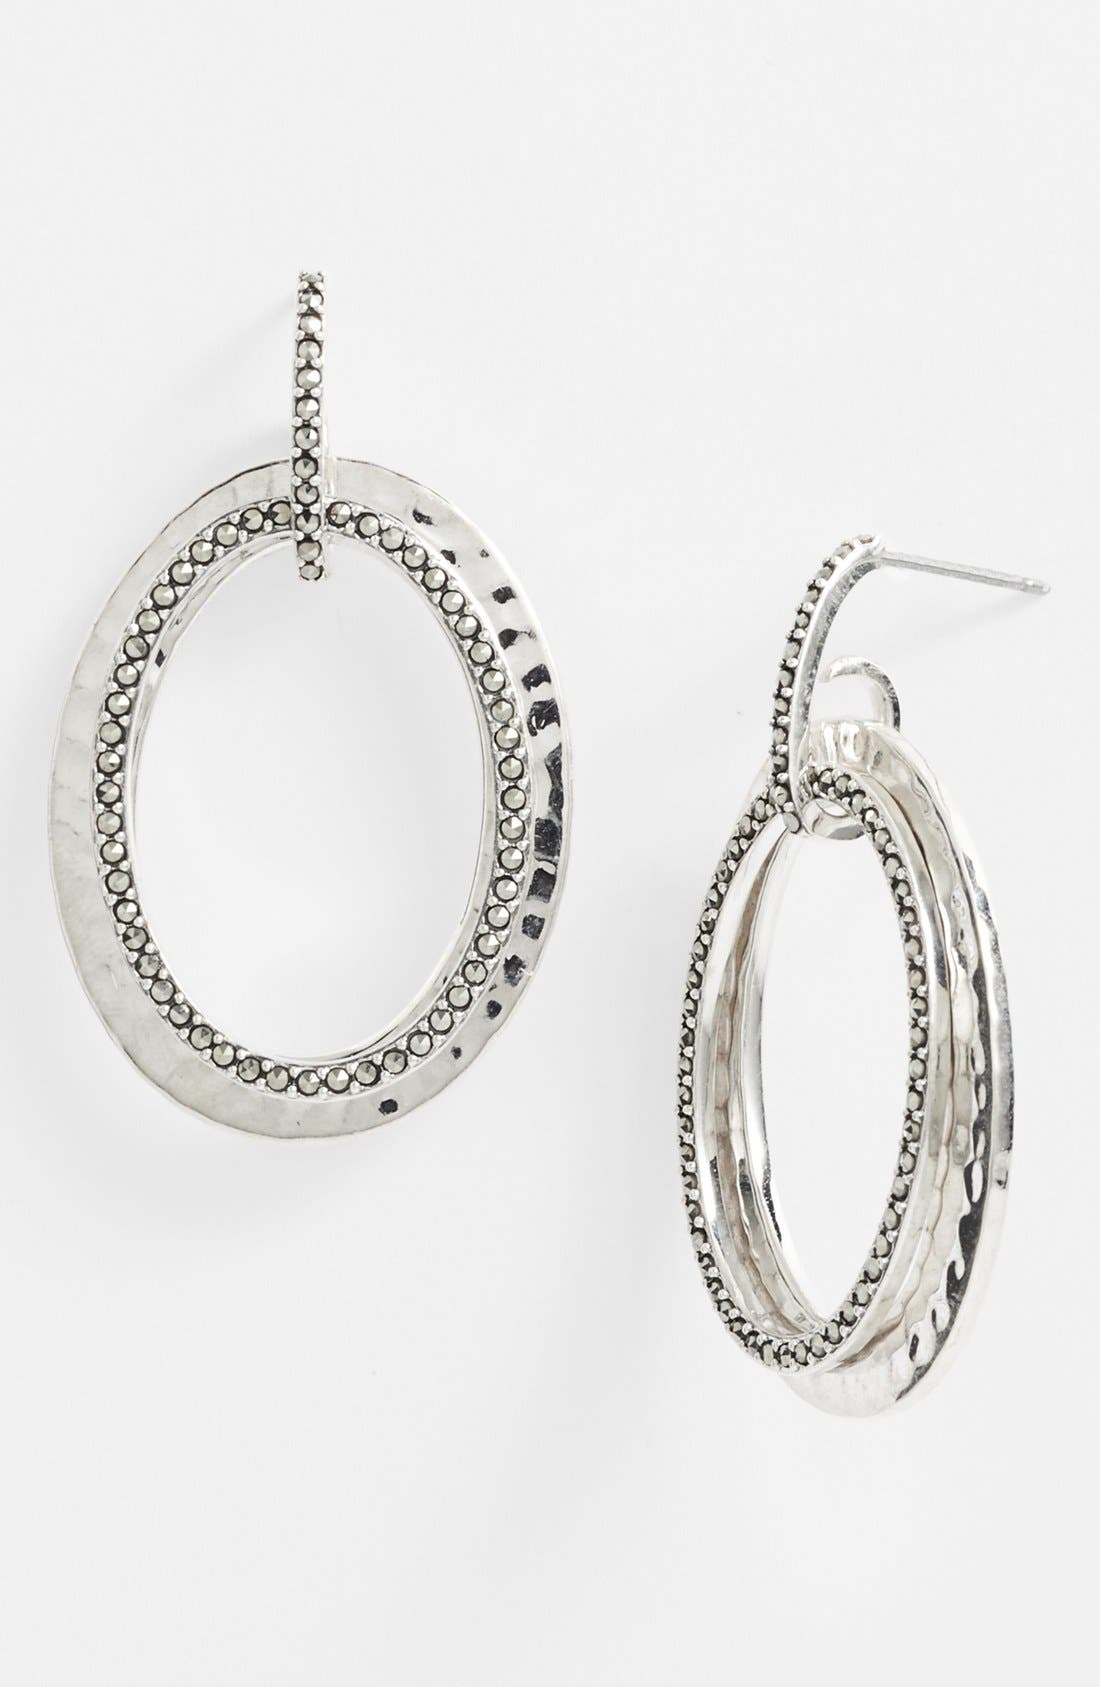 Main Image - Judith Jack 'Halo' Oval Drop Earrings